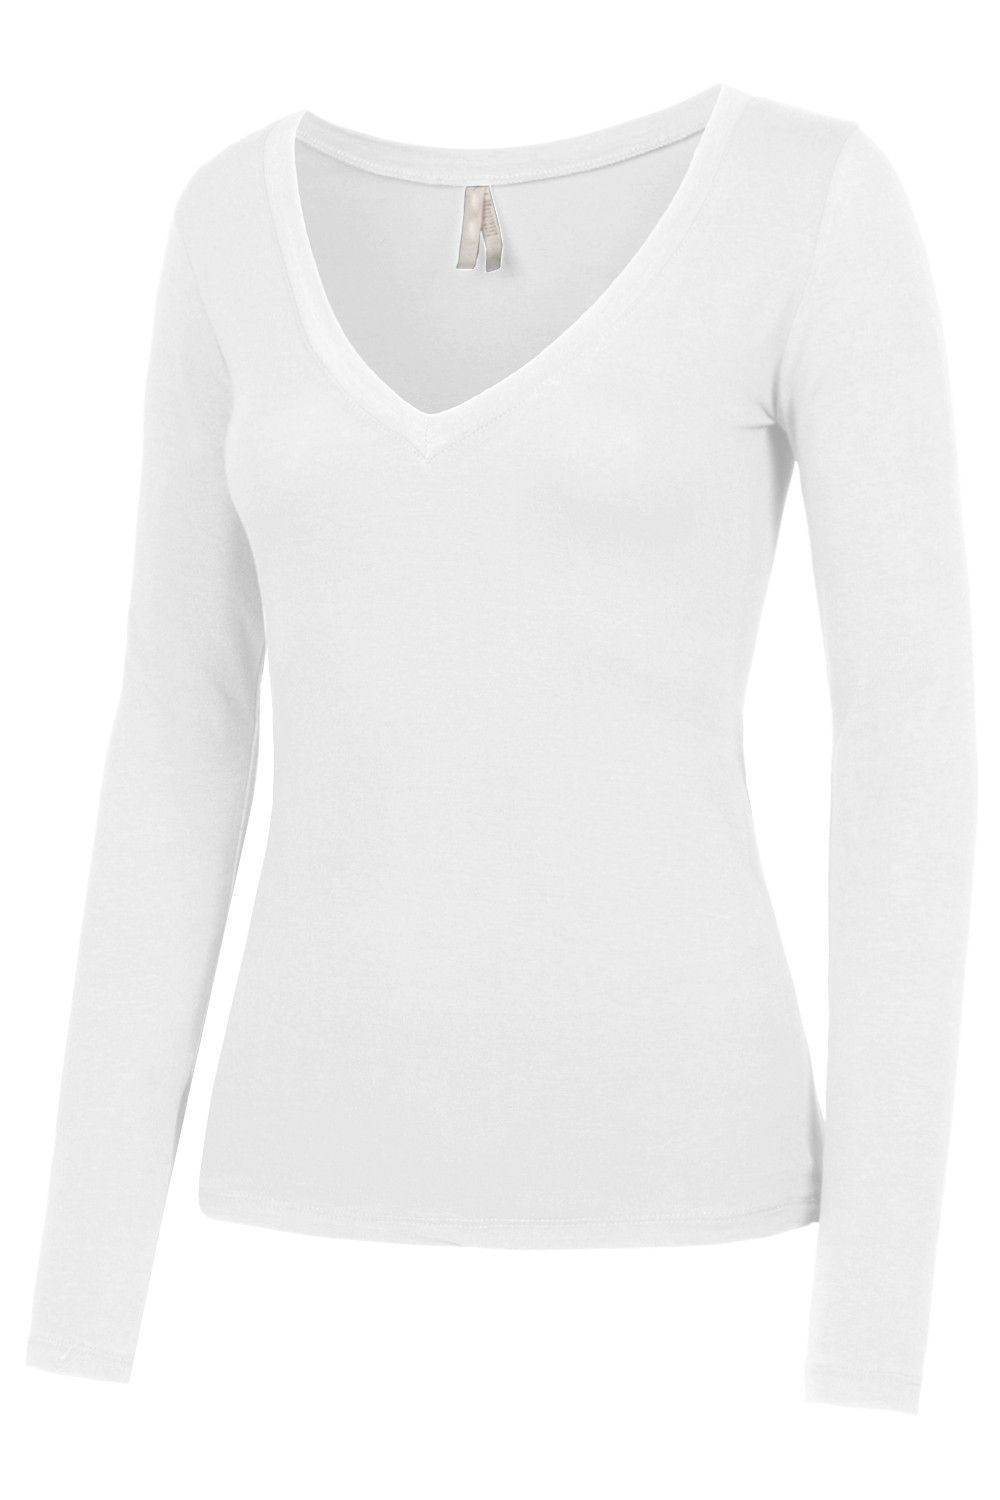 17f9aed6977 Every woman needs a lightweight fitted long sleeve v-neck cotton shirt with  stretch in her closet. Its versatile and comfortable at the same time.